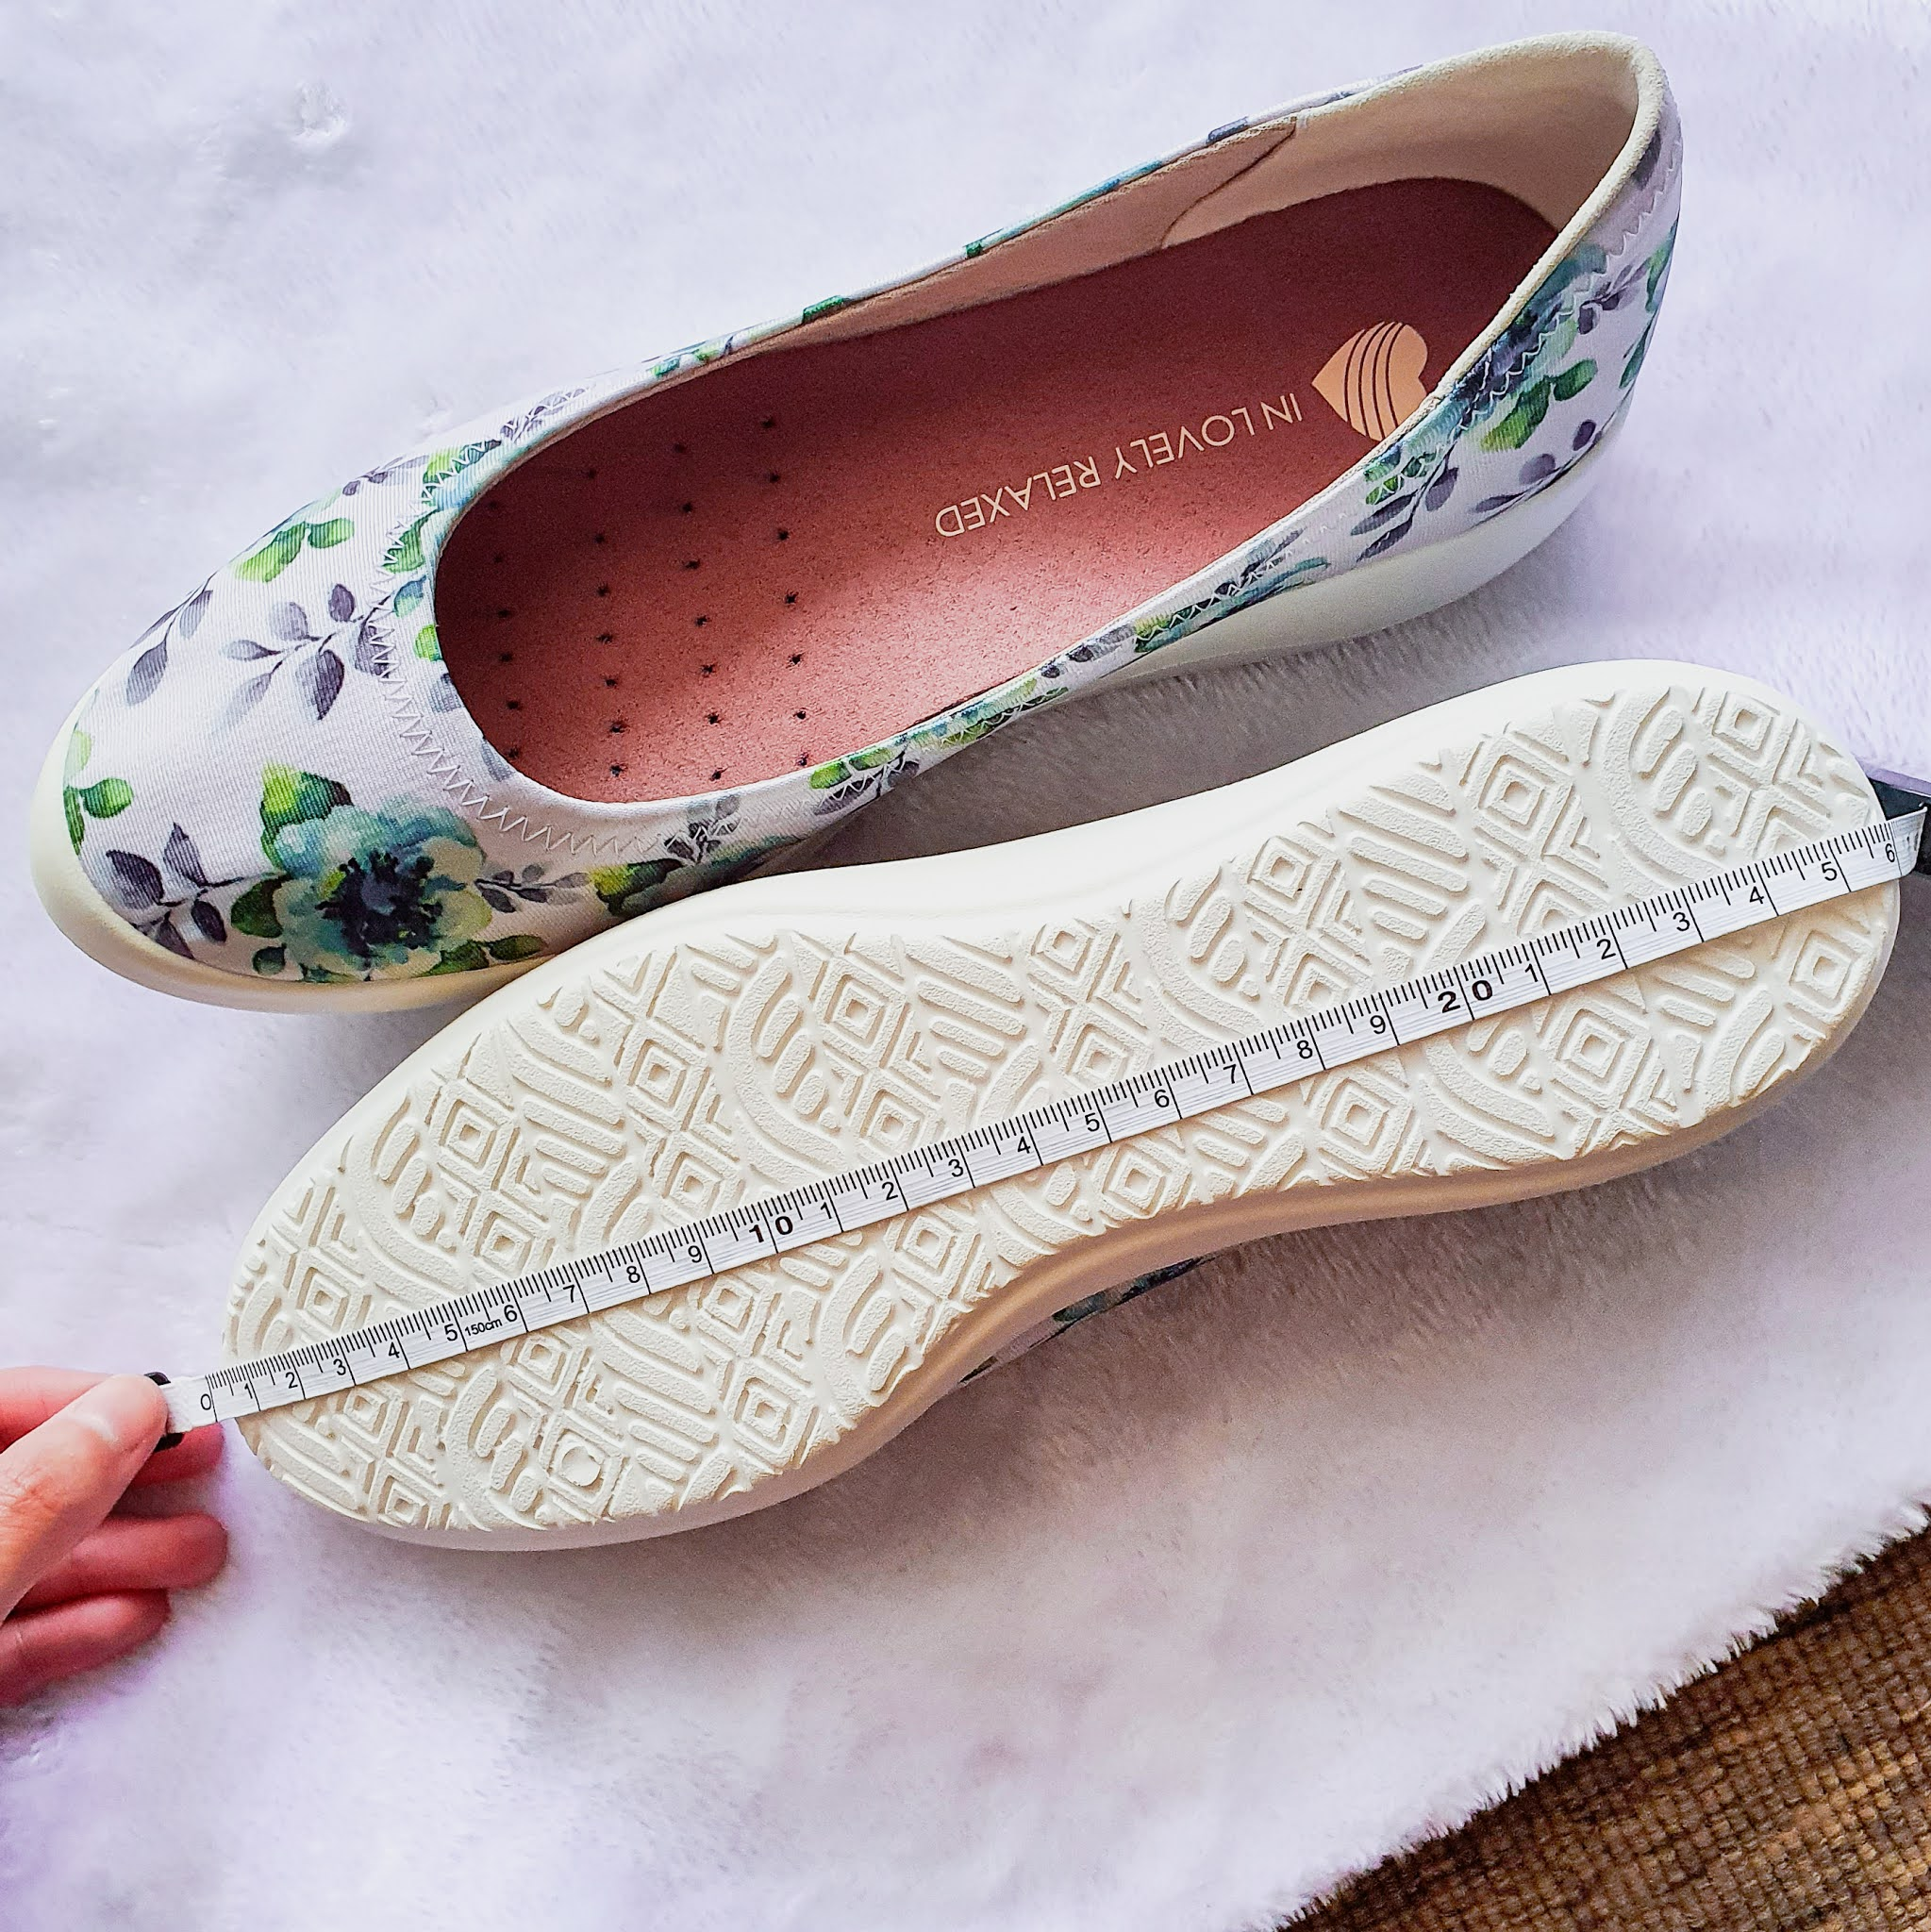 size 37, equivalent to insole length of 23.5cm